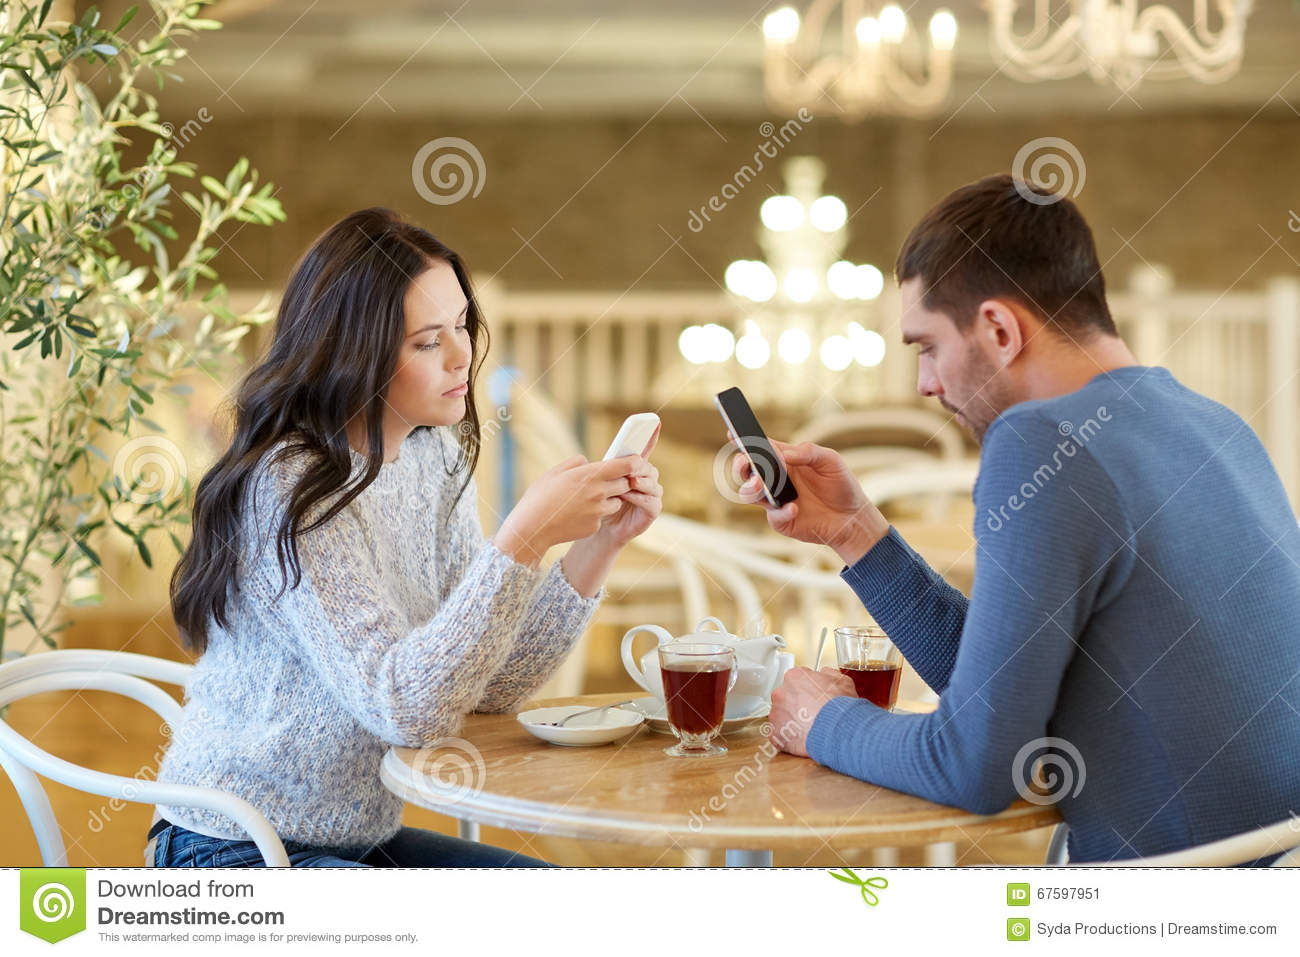 drinking and dating Have you ever tried being sober during your first hang-out session with a guy.